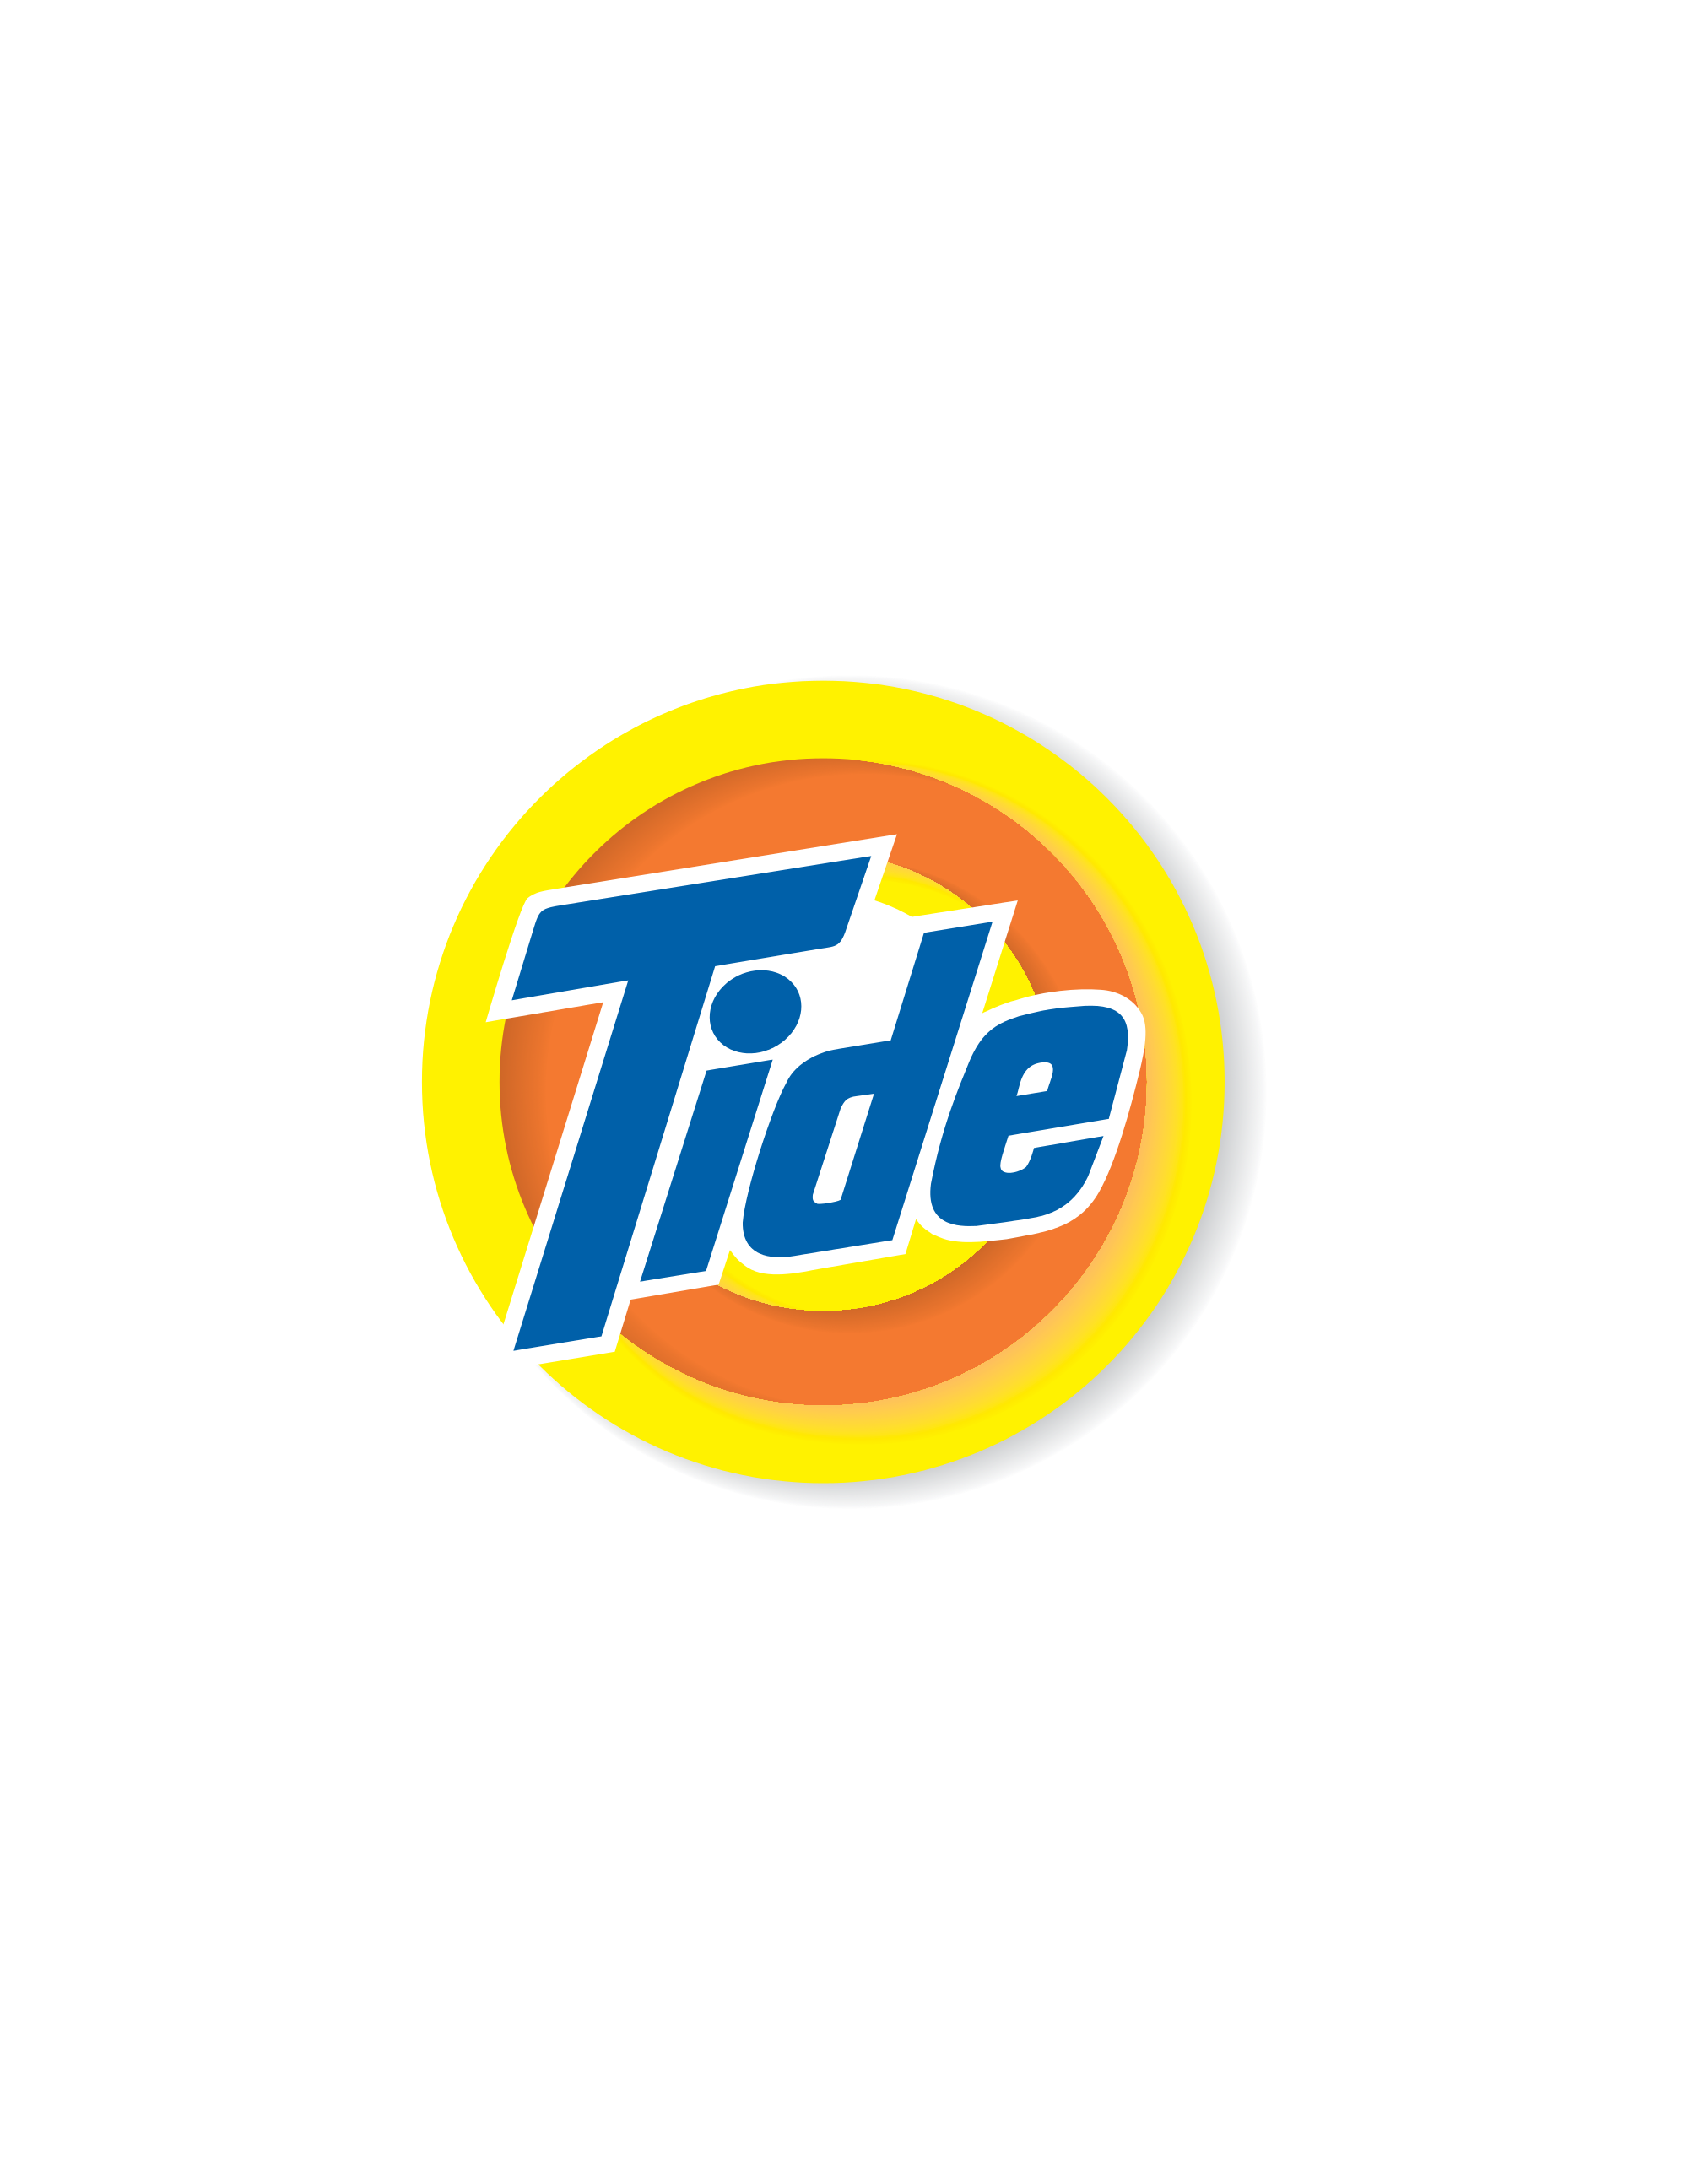 Tide logo png. File svg wikimedia commons